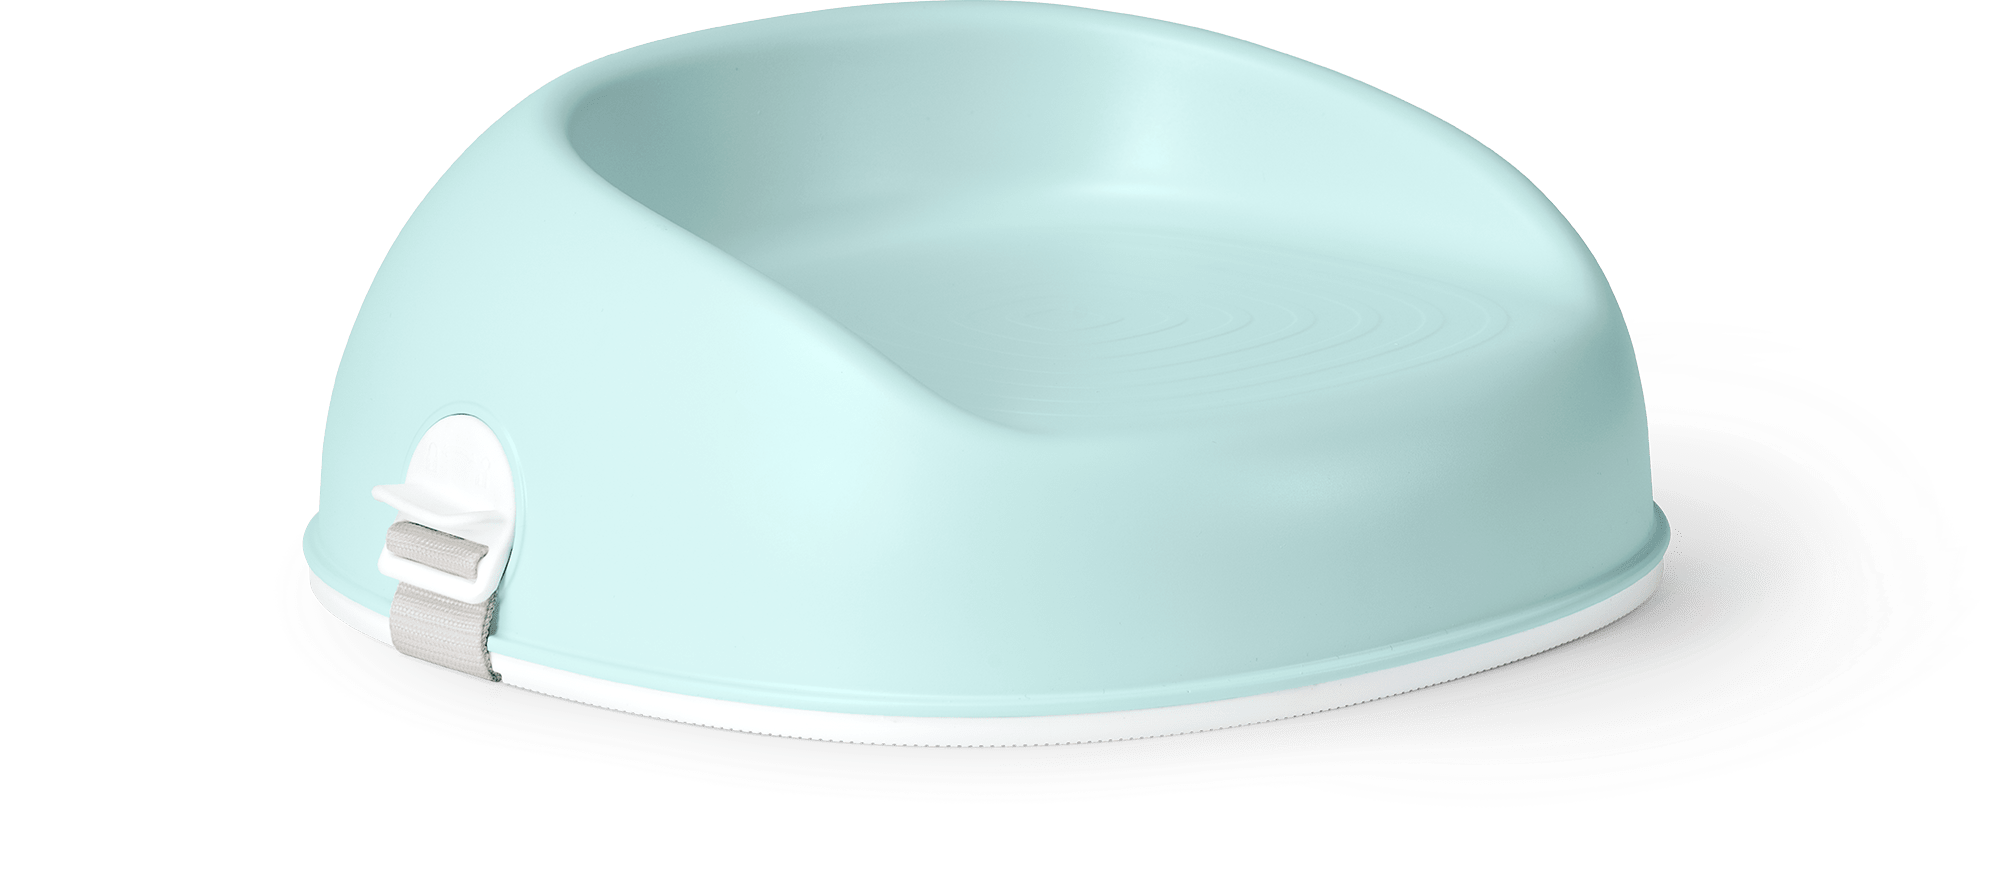 BABYBJÖRN Booster Seat in mint green, a smart solution that you place on a chair to help your child reach the table.